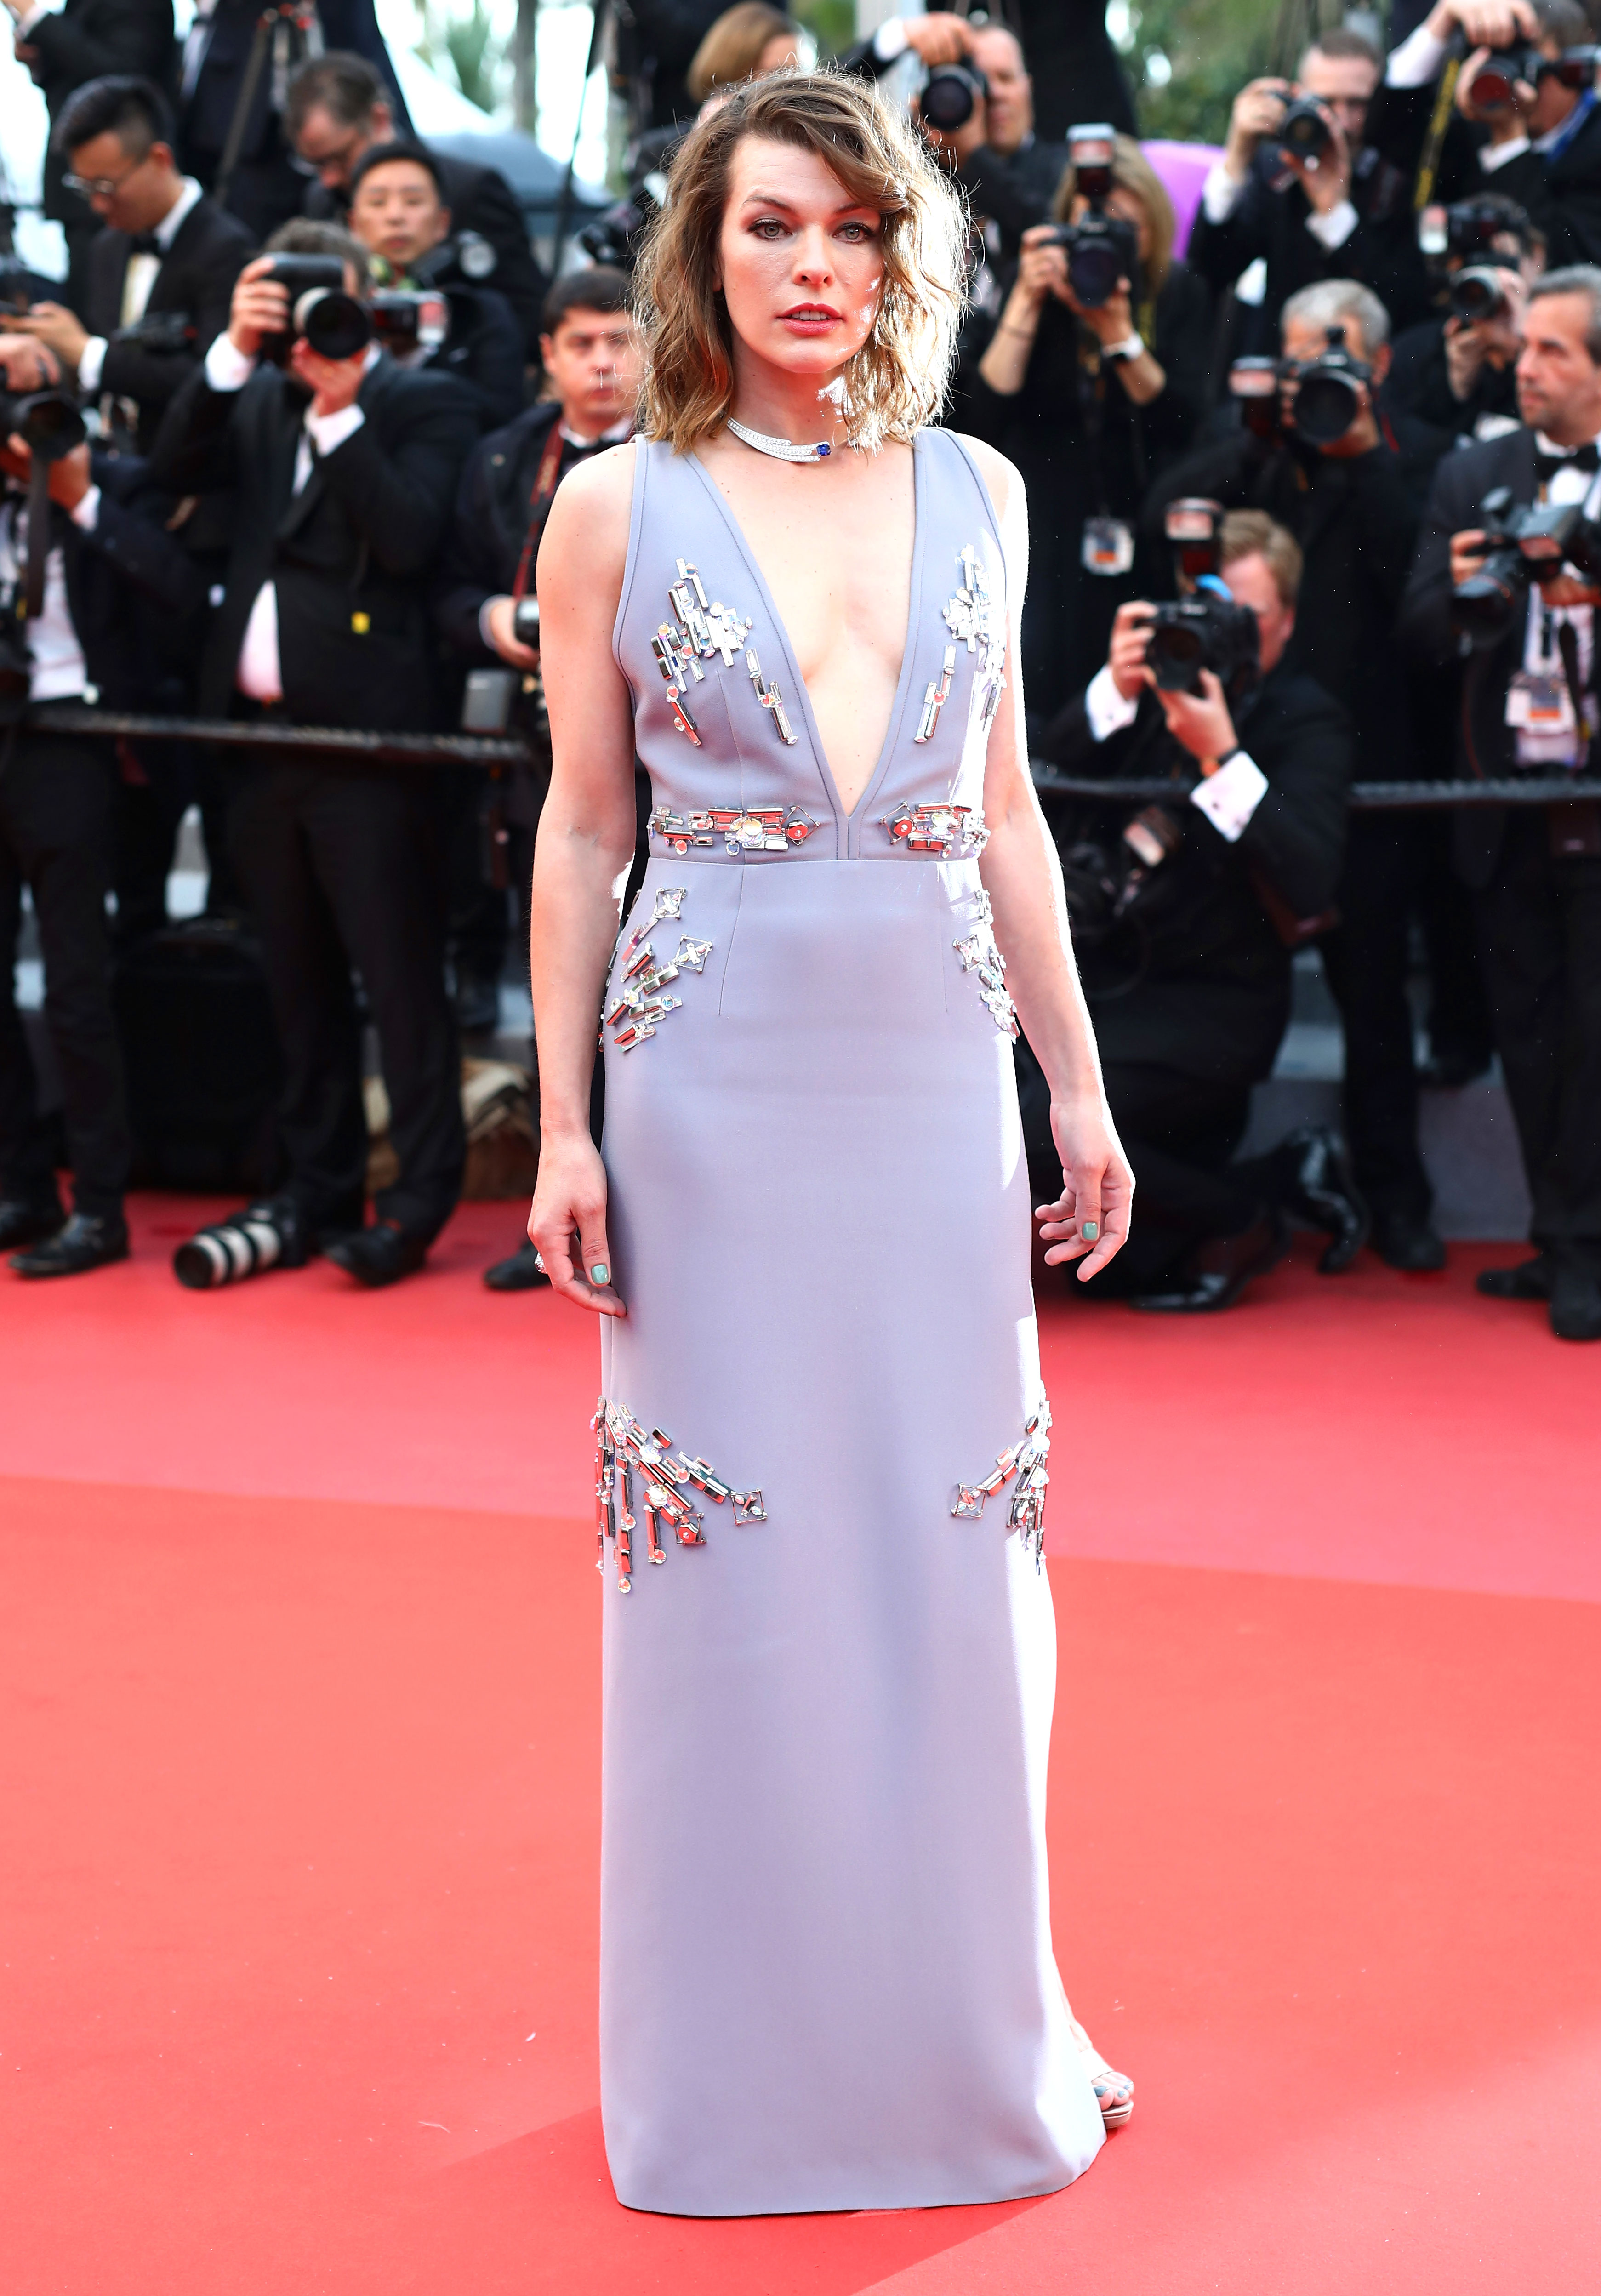 Milla Jovovich - At the Burning premiere on Wednesday, May 16, the actress sparkled in a periwinkle embellished Prada gown and Piaget jewels.